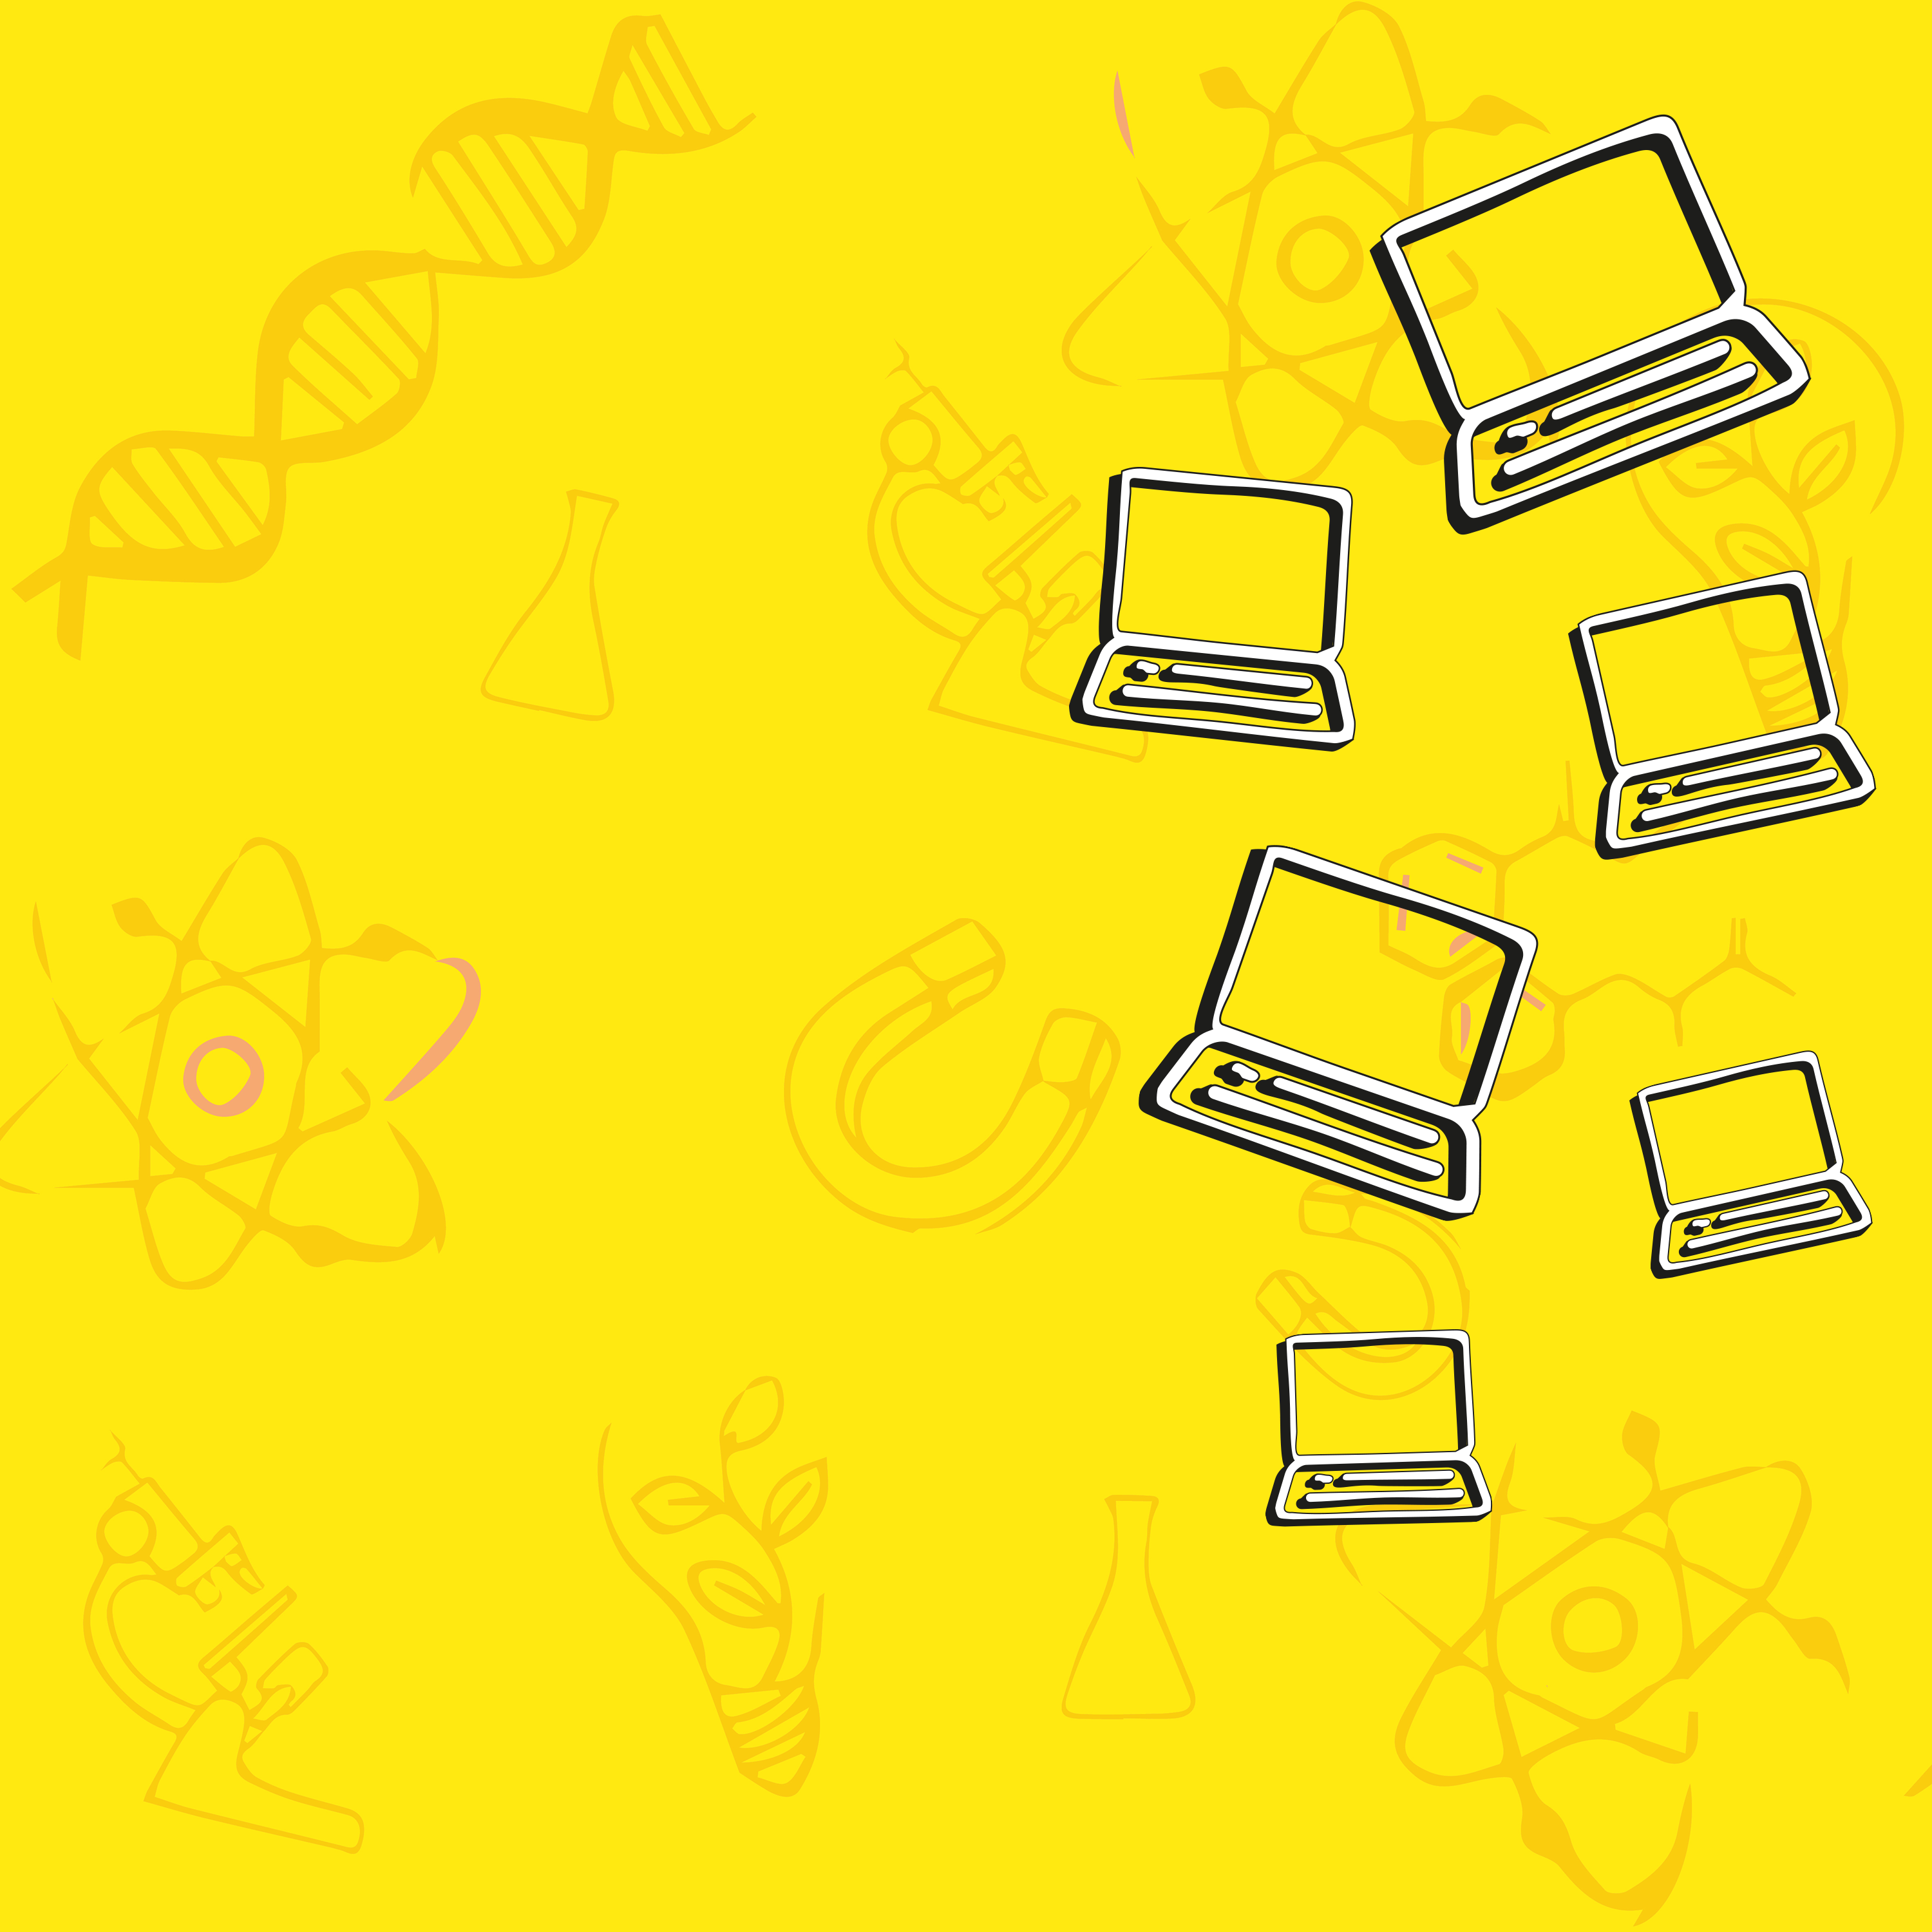 Yellow background with scientific shapes.